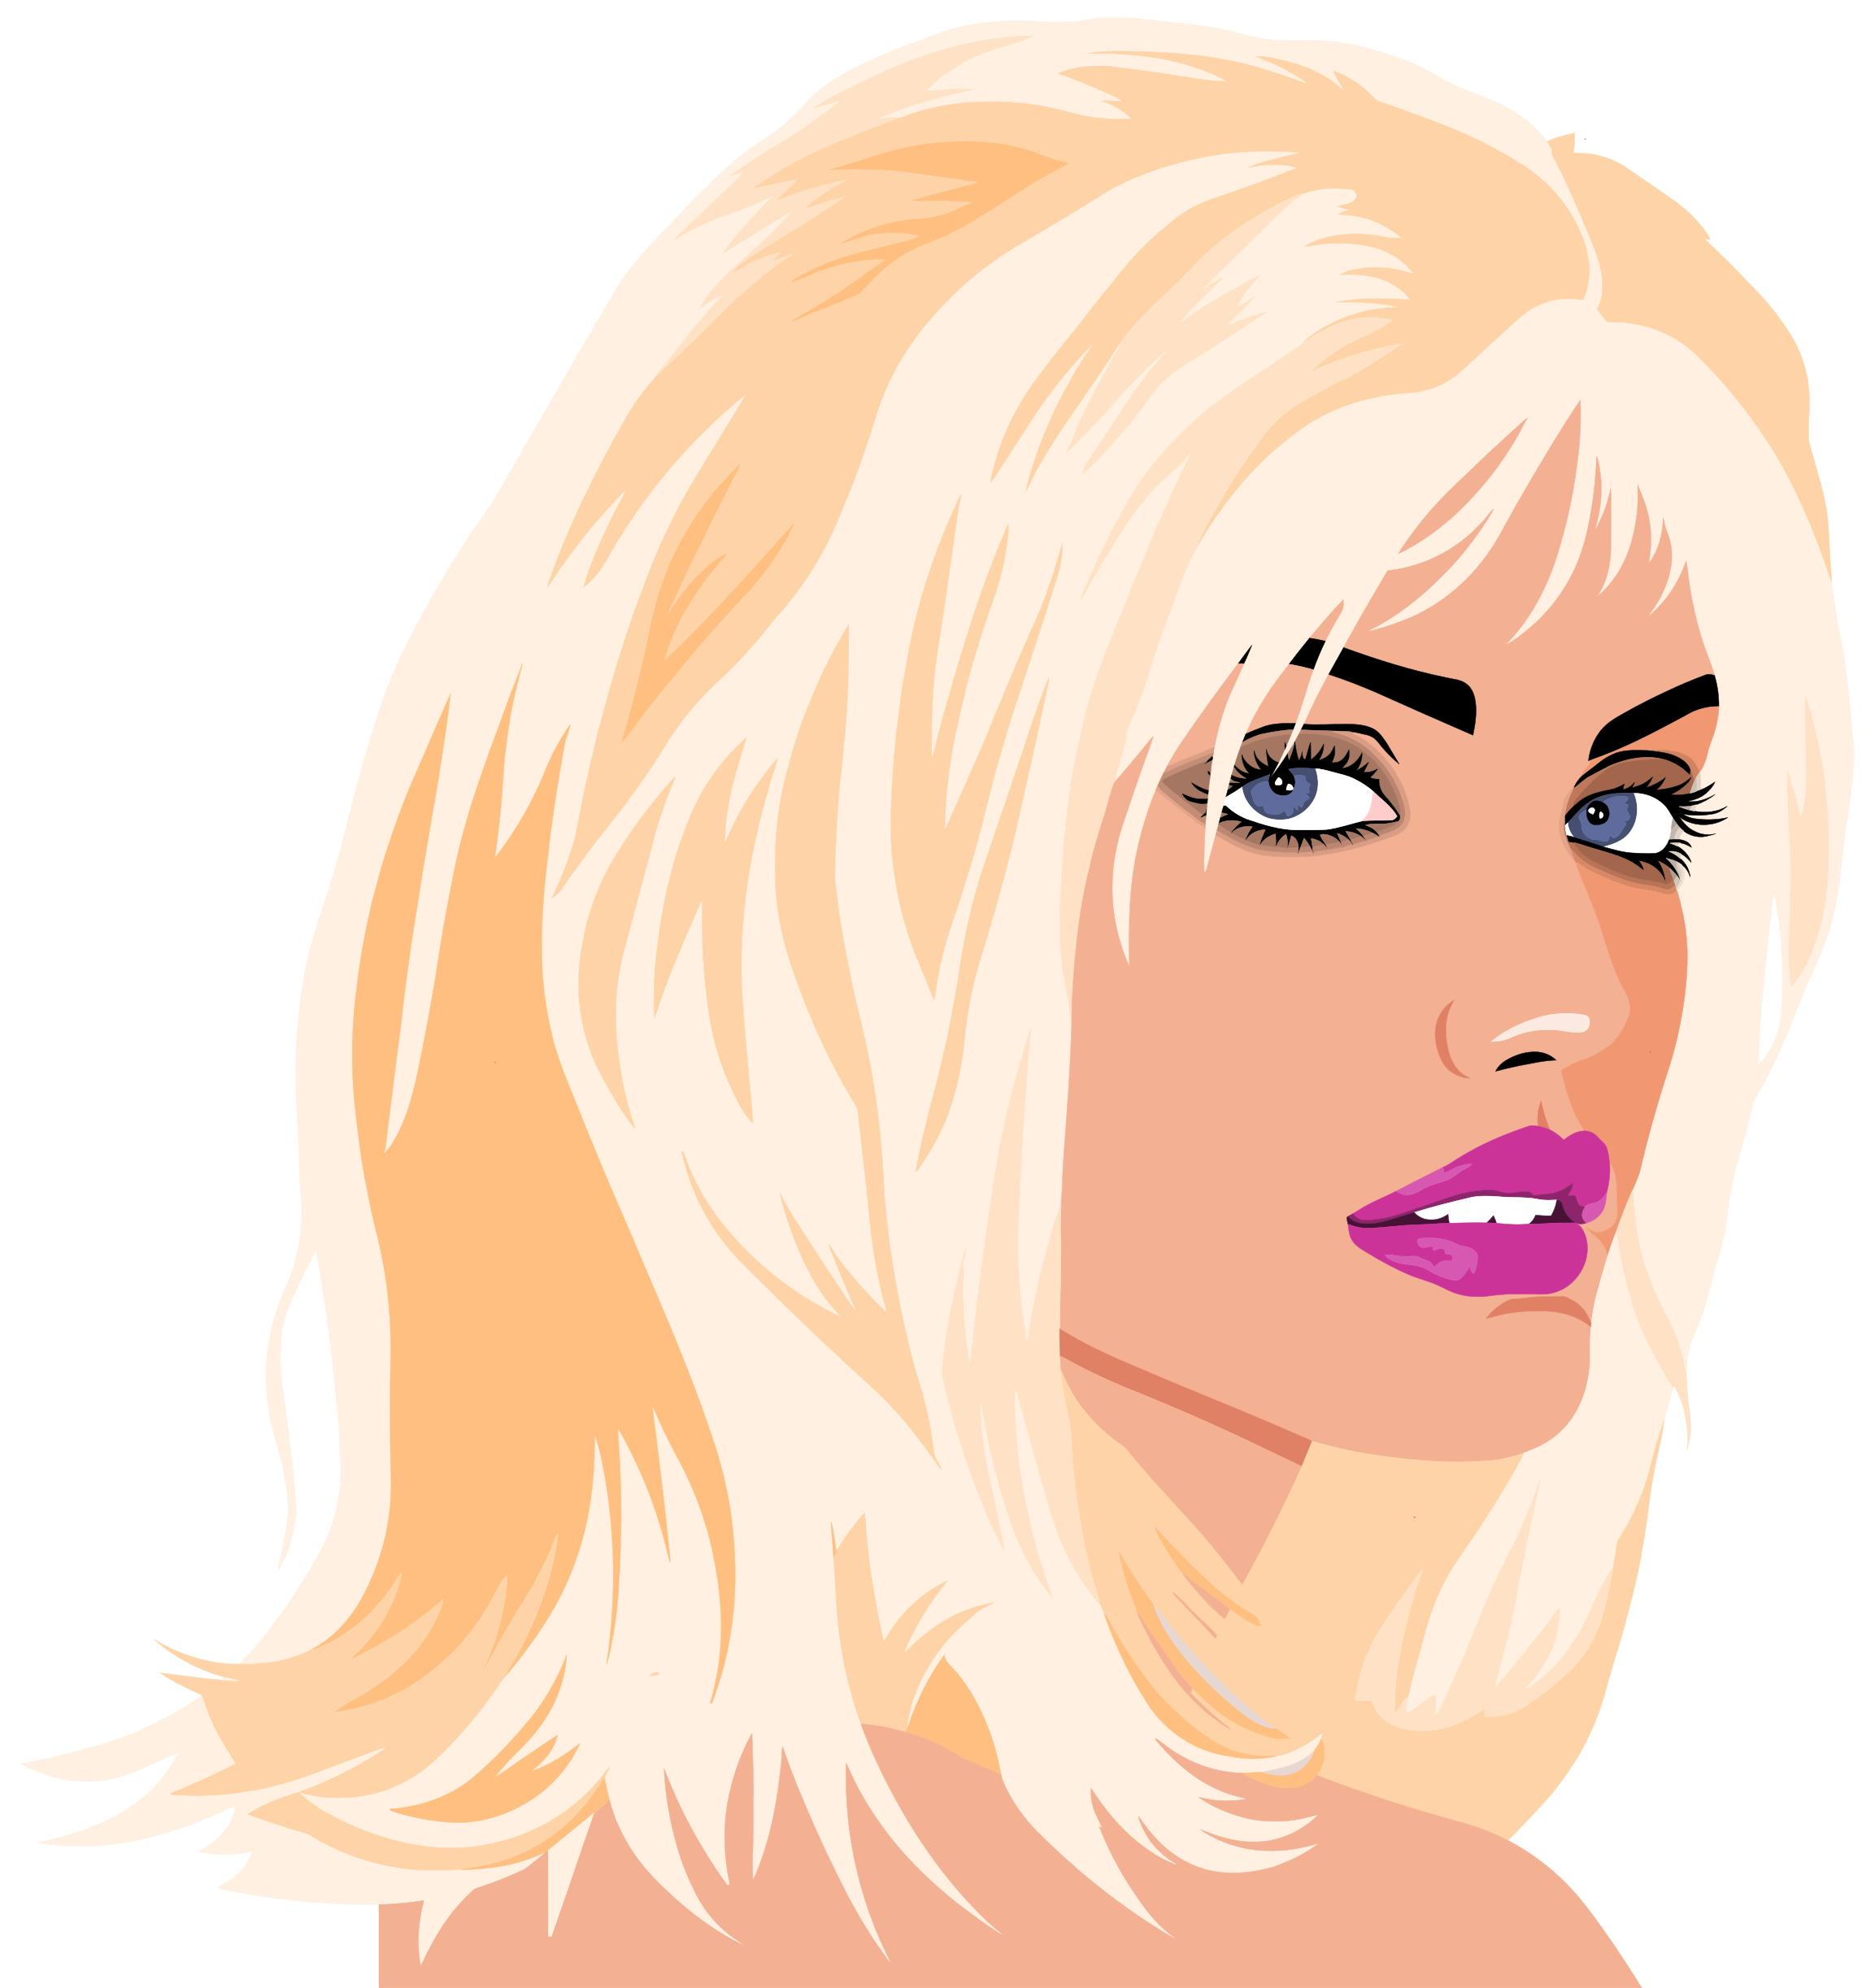 Beautiful woman clipart 7 » Clipart Station.